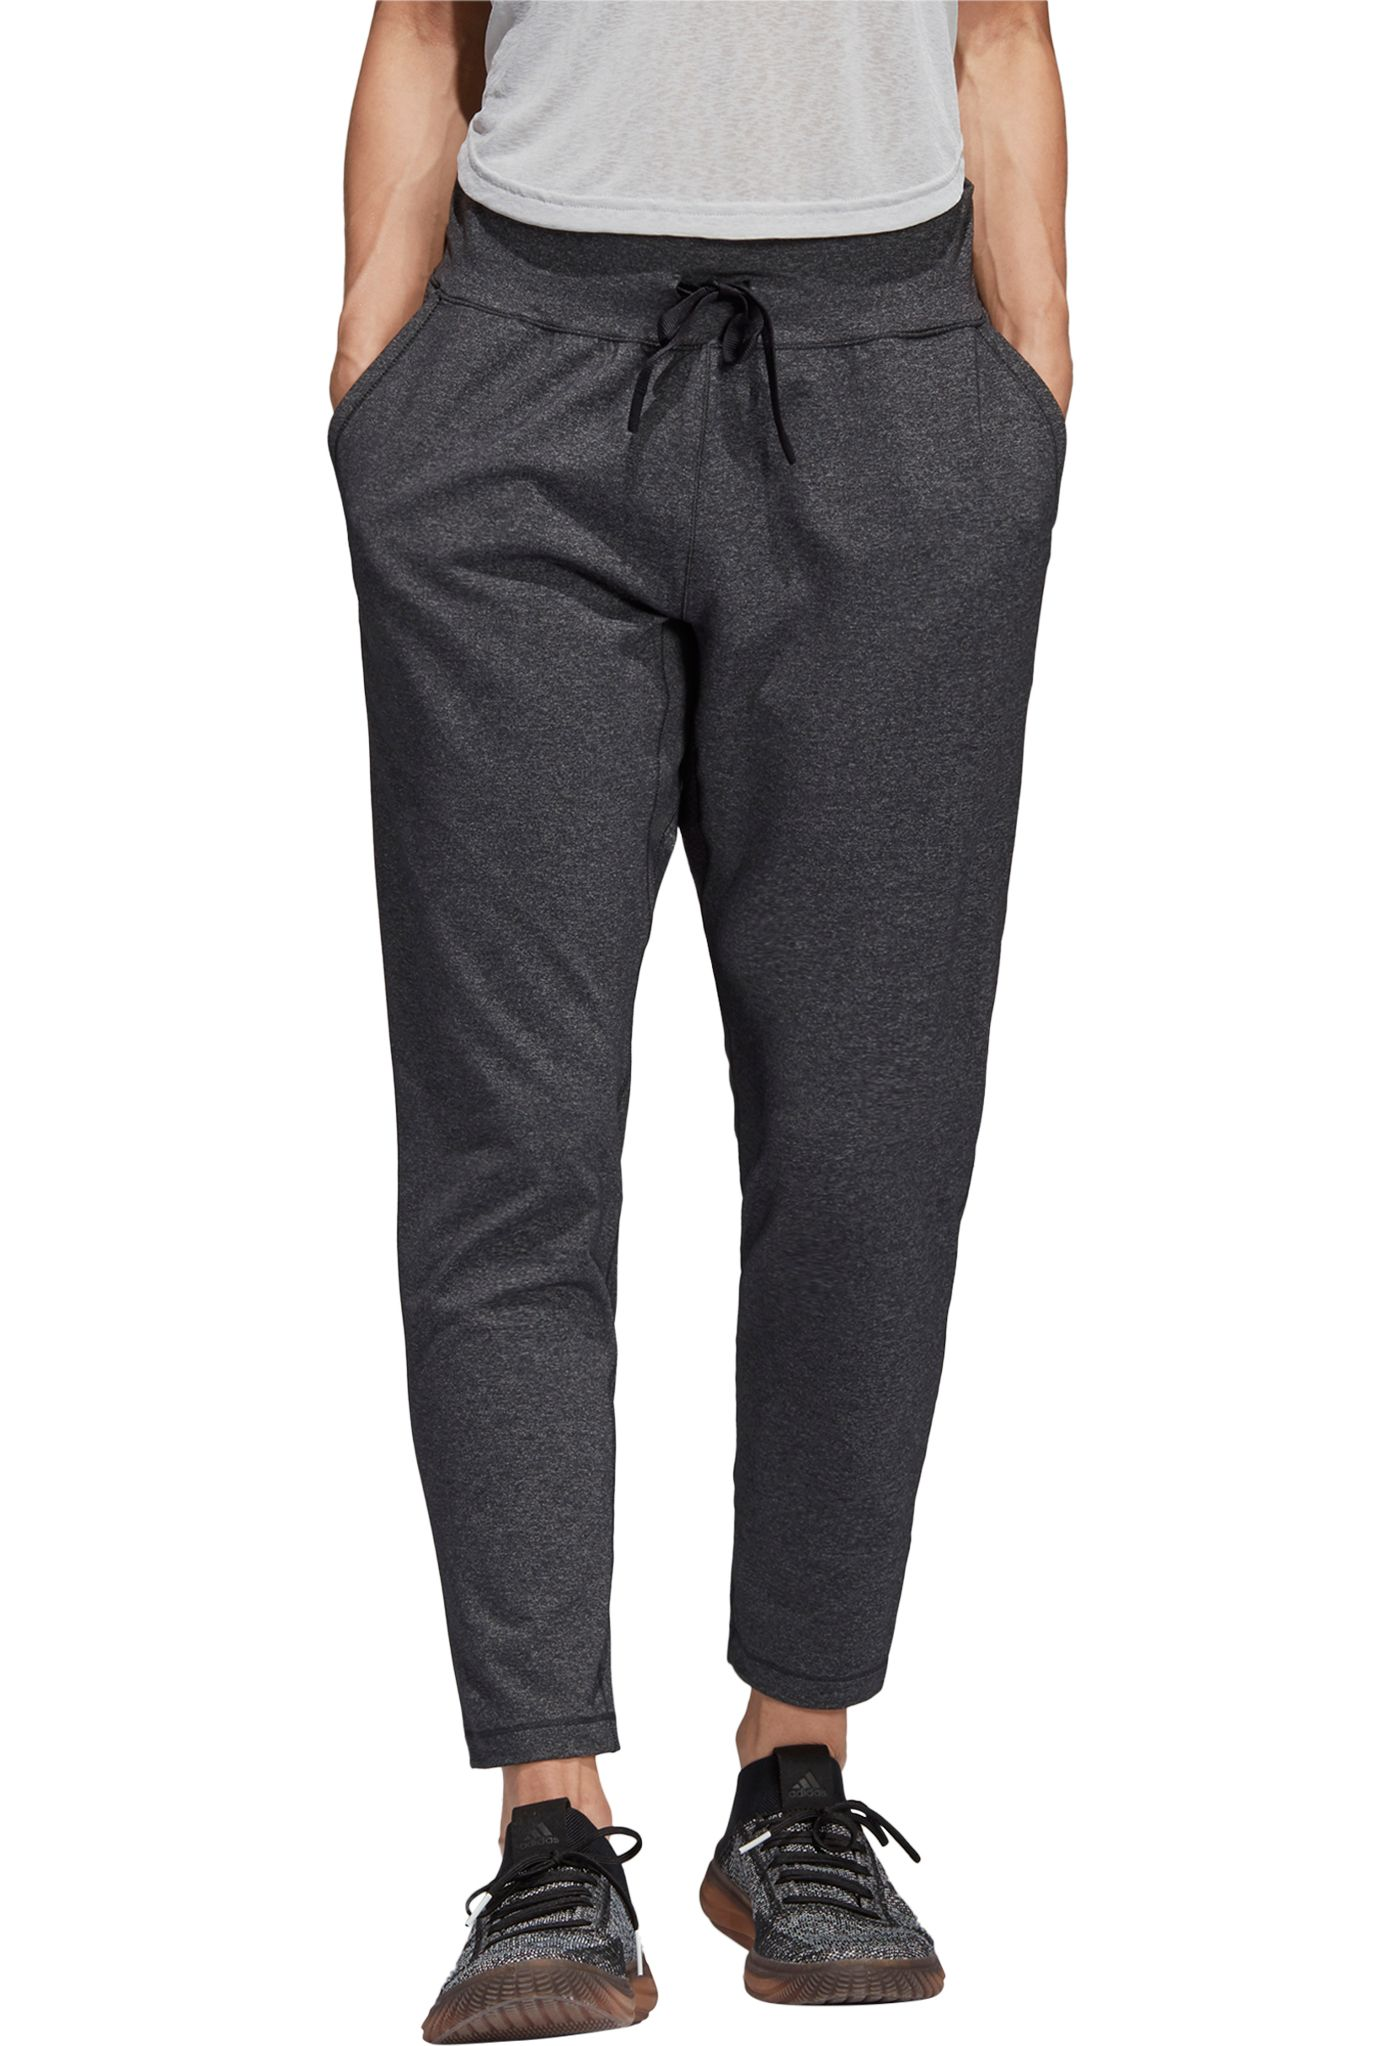 adidas Women's Believe This 7/8th Length Pants